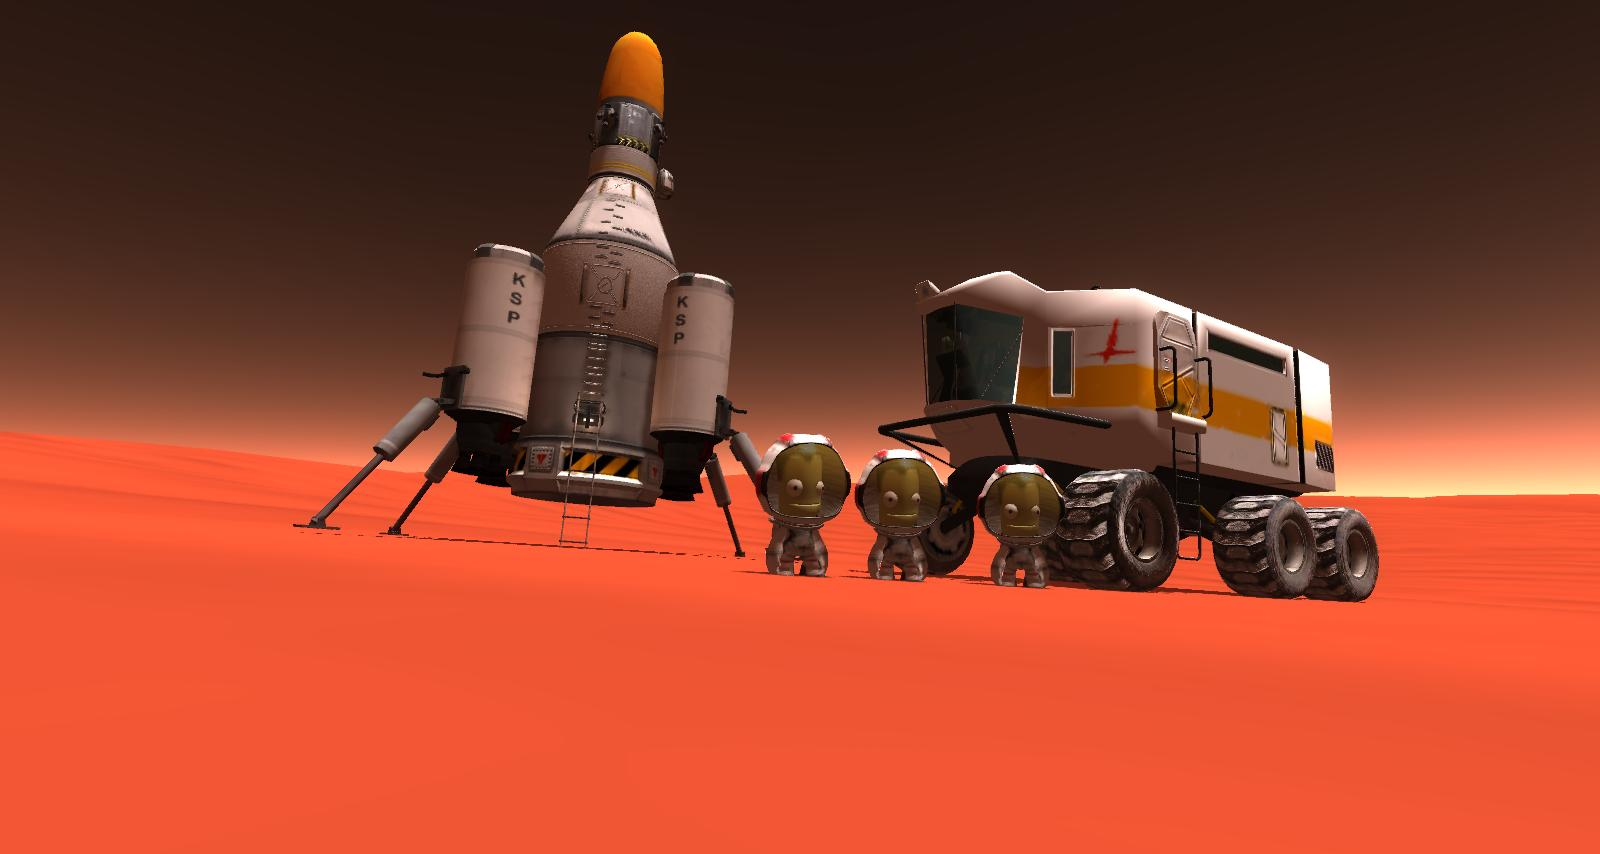 nasa ksp rover electric - photo #1